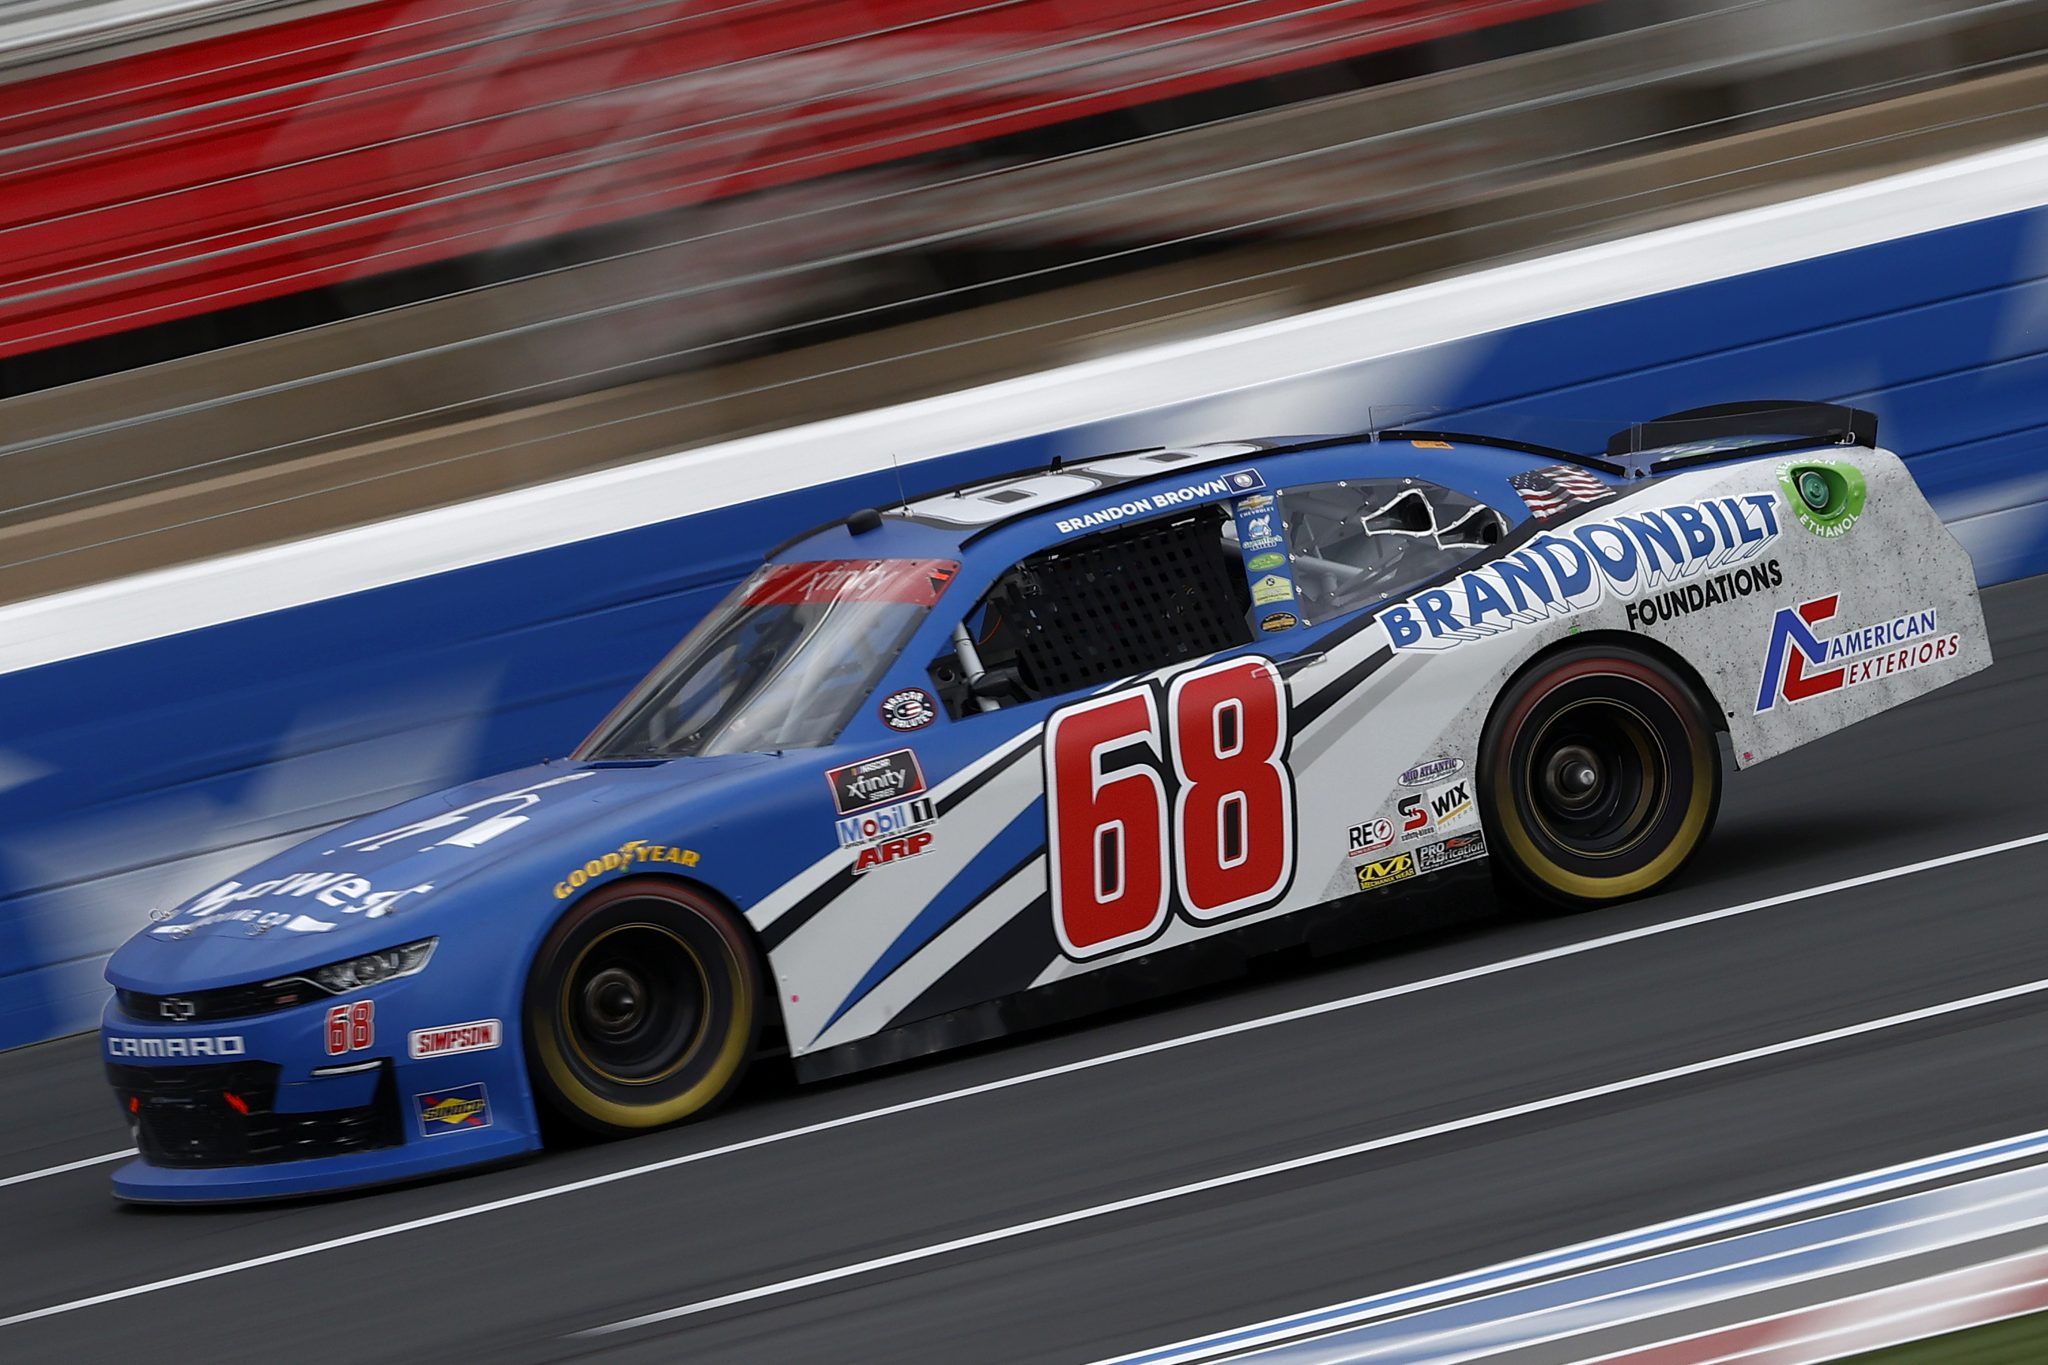 CONCORD, NORTH CAROLINA - MAY 28: Brandon Brown, driver of the #68 Brandonbilt Foundations Chevrolet, drives during practice for the NASCAR Xfinity Series Alsco Uniforms 300 at Charlotte Motor Speedway on May 28, 2021 in Concord, North Carolina. (Photo by Maddie Meyer/Getty Images) | Getty Images